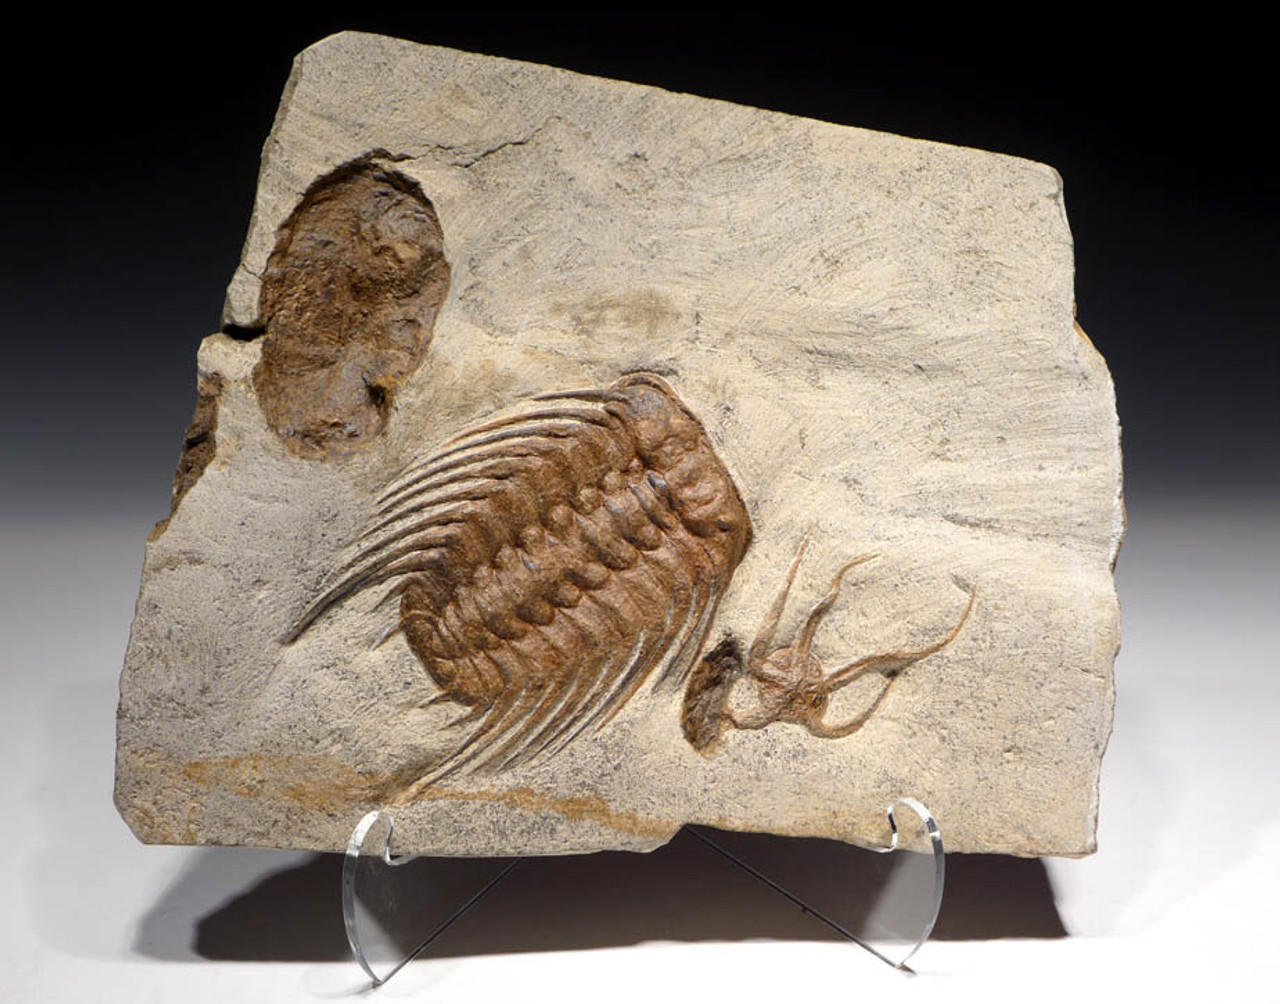 NATURAL ORDOVICIAN OCEAN LIFE FOSSIL WITH LARGE SELENOPELTIS TRILOBITE, STARFISH AND BIVALVE *TRX272